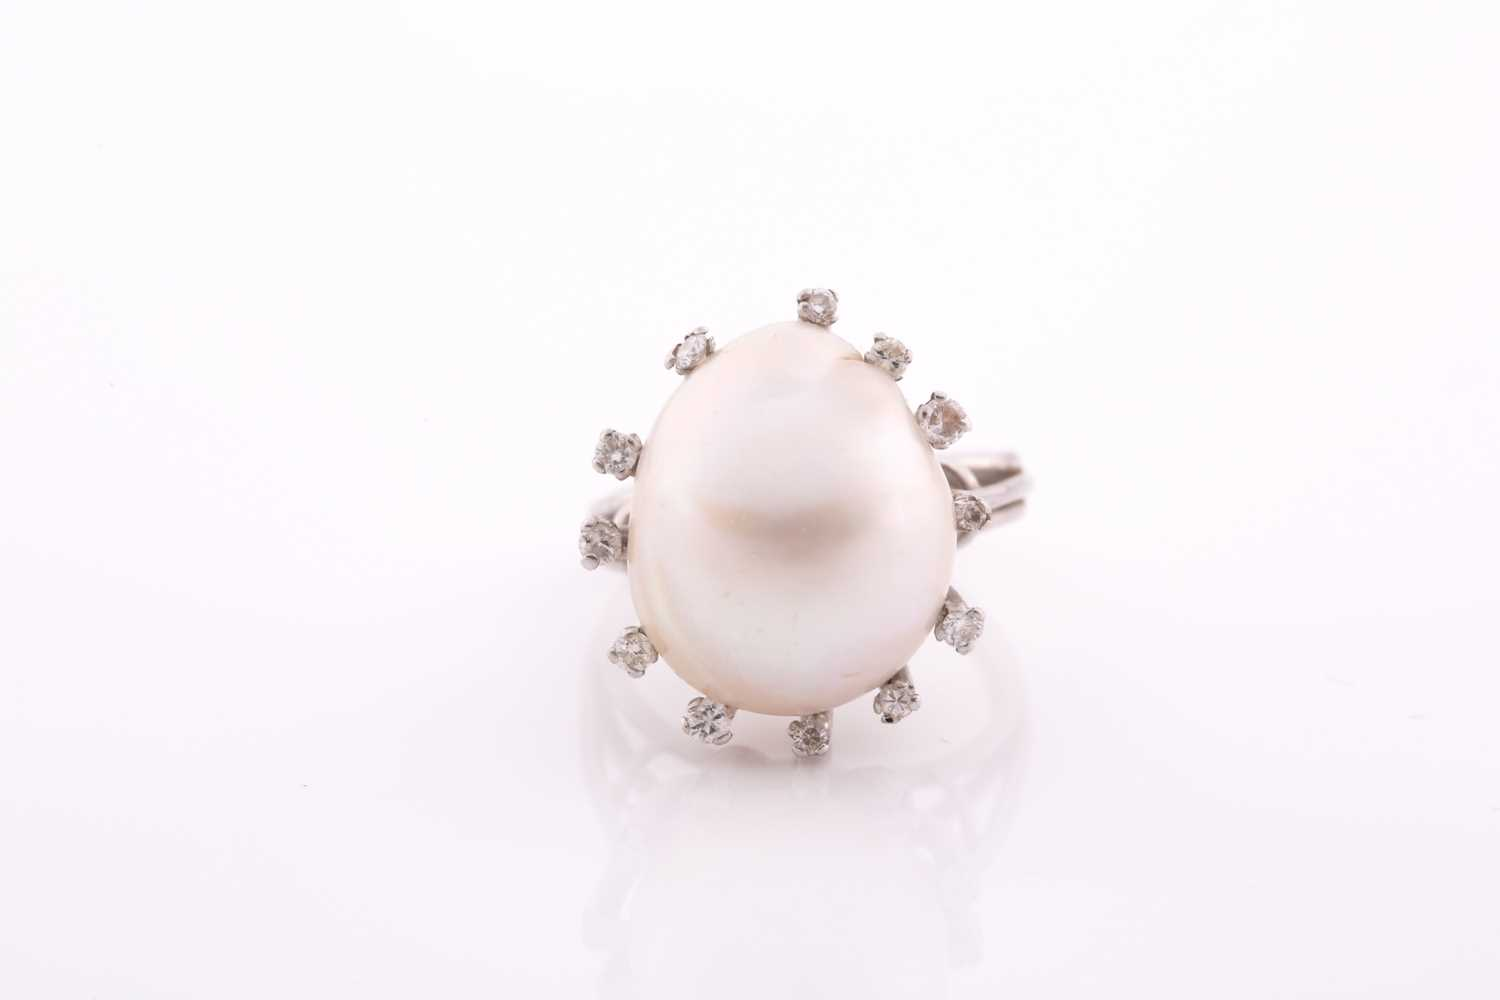 A diamond and cultured Baroque pearl cocktail ring, the pearl measuring approximately 1. 7x 1.35,